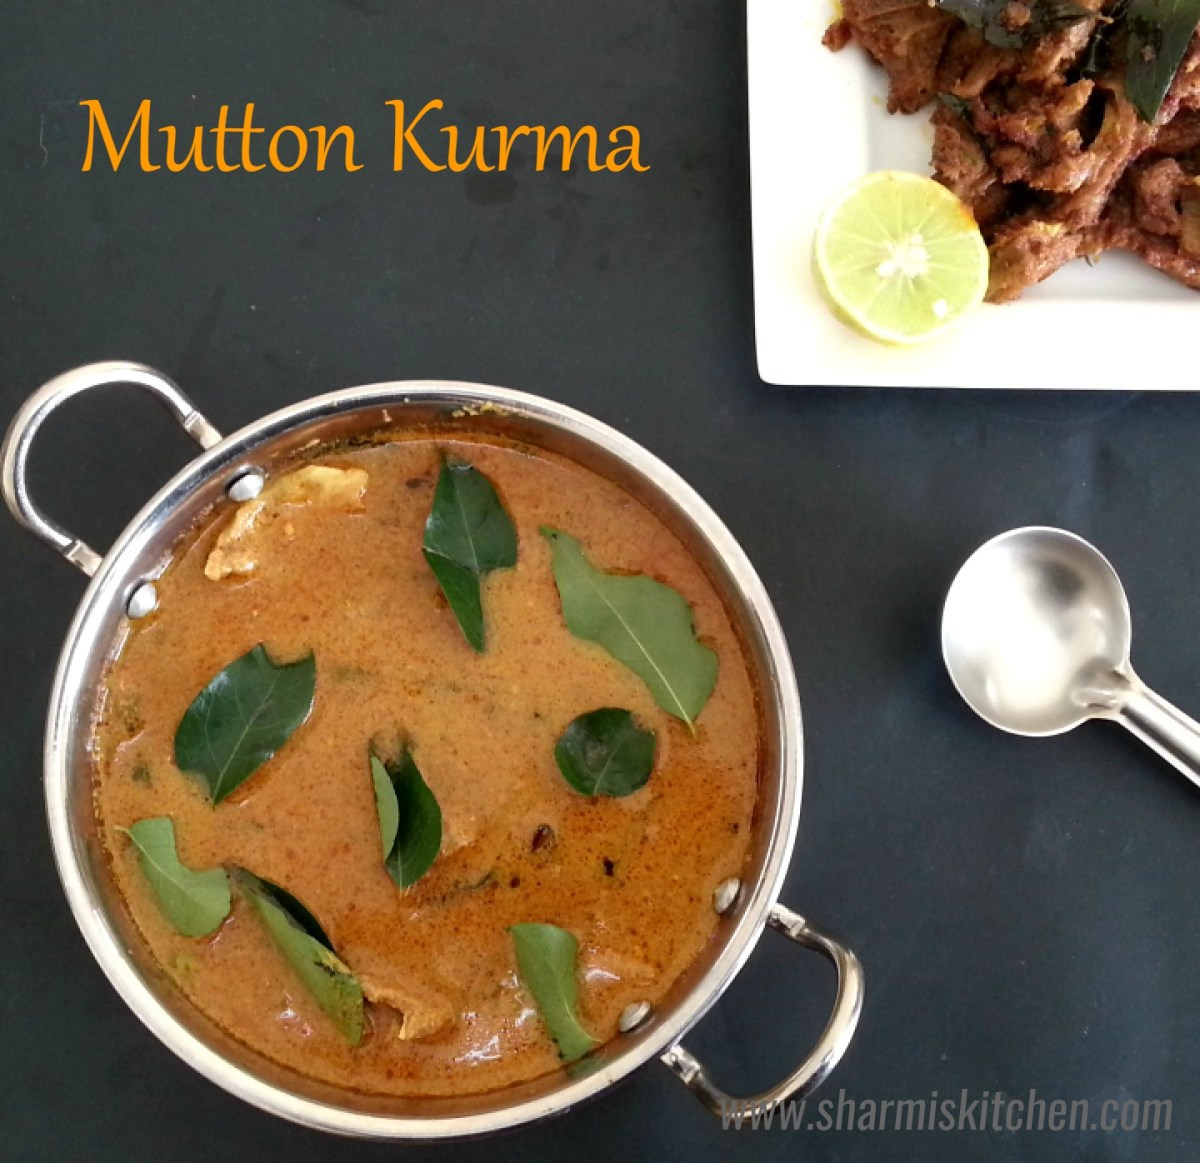 Mutton Kurma | Salem Style Mutton Korma Recipe